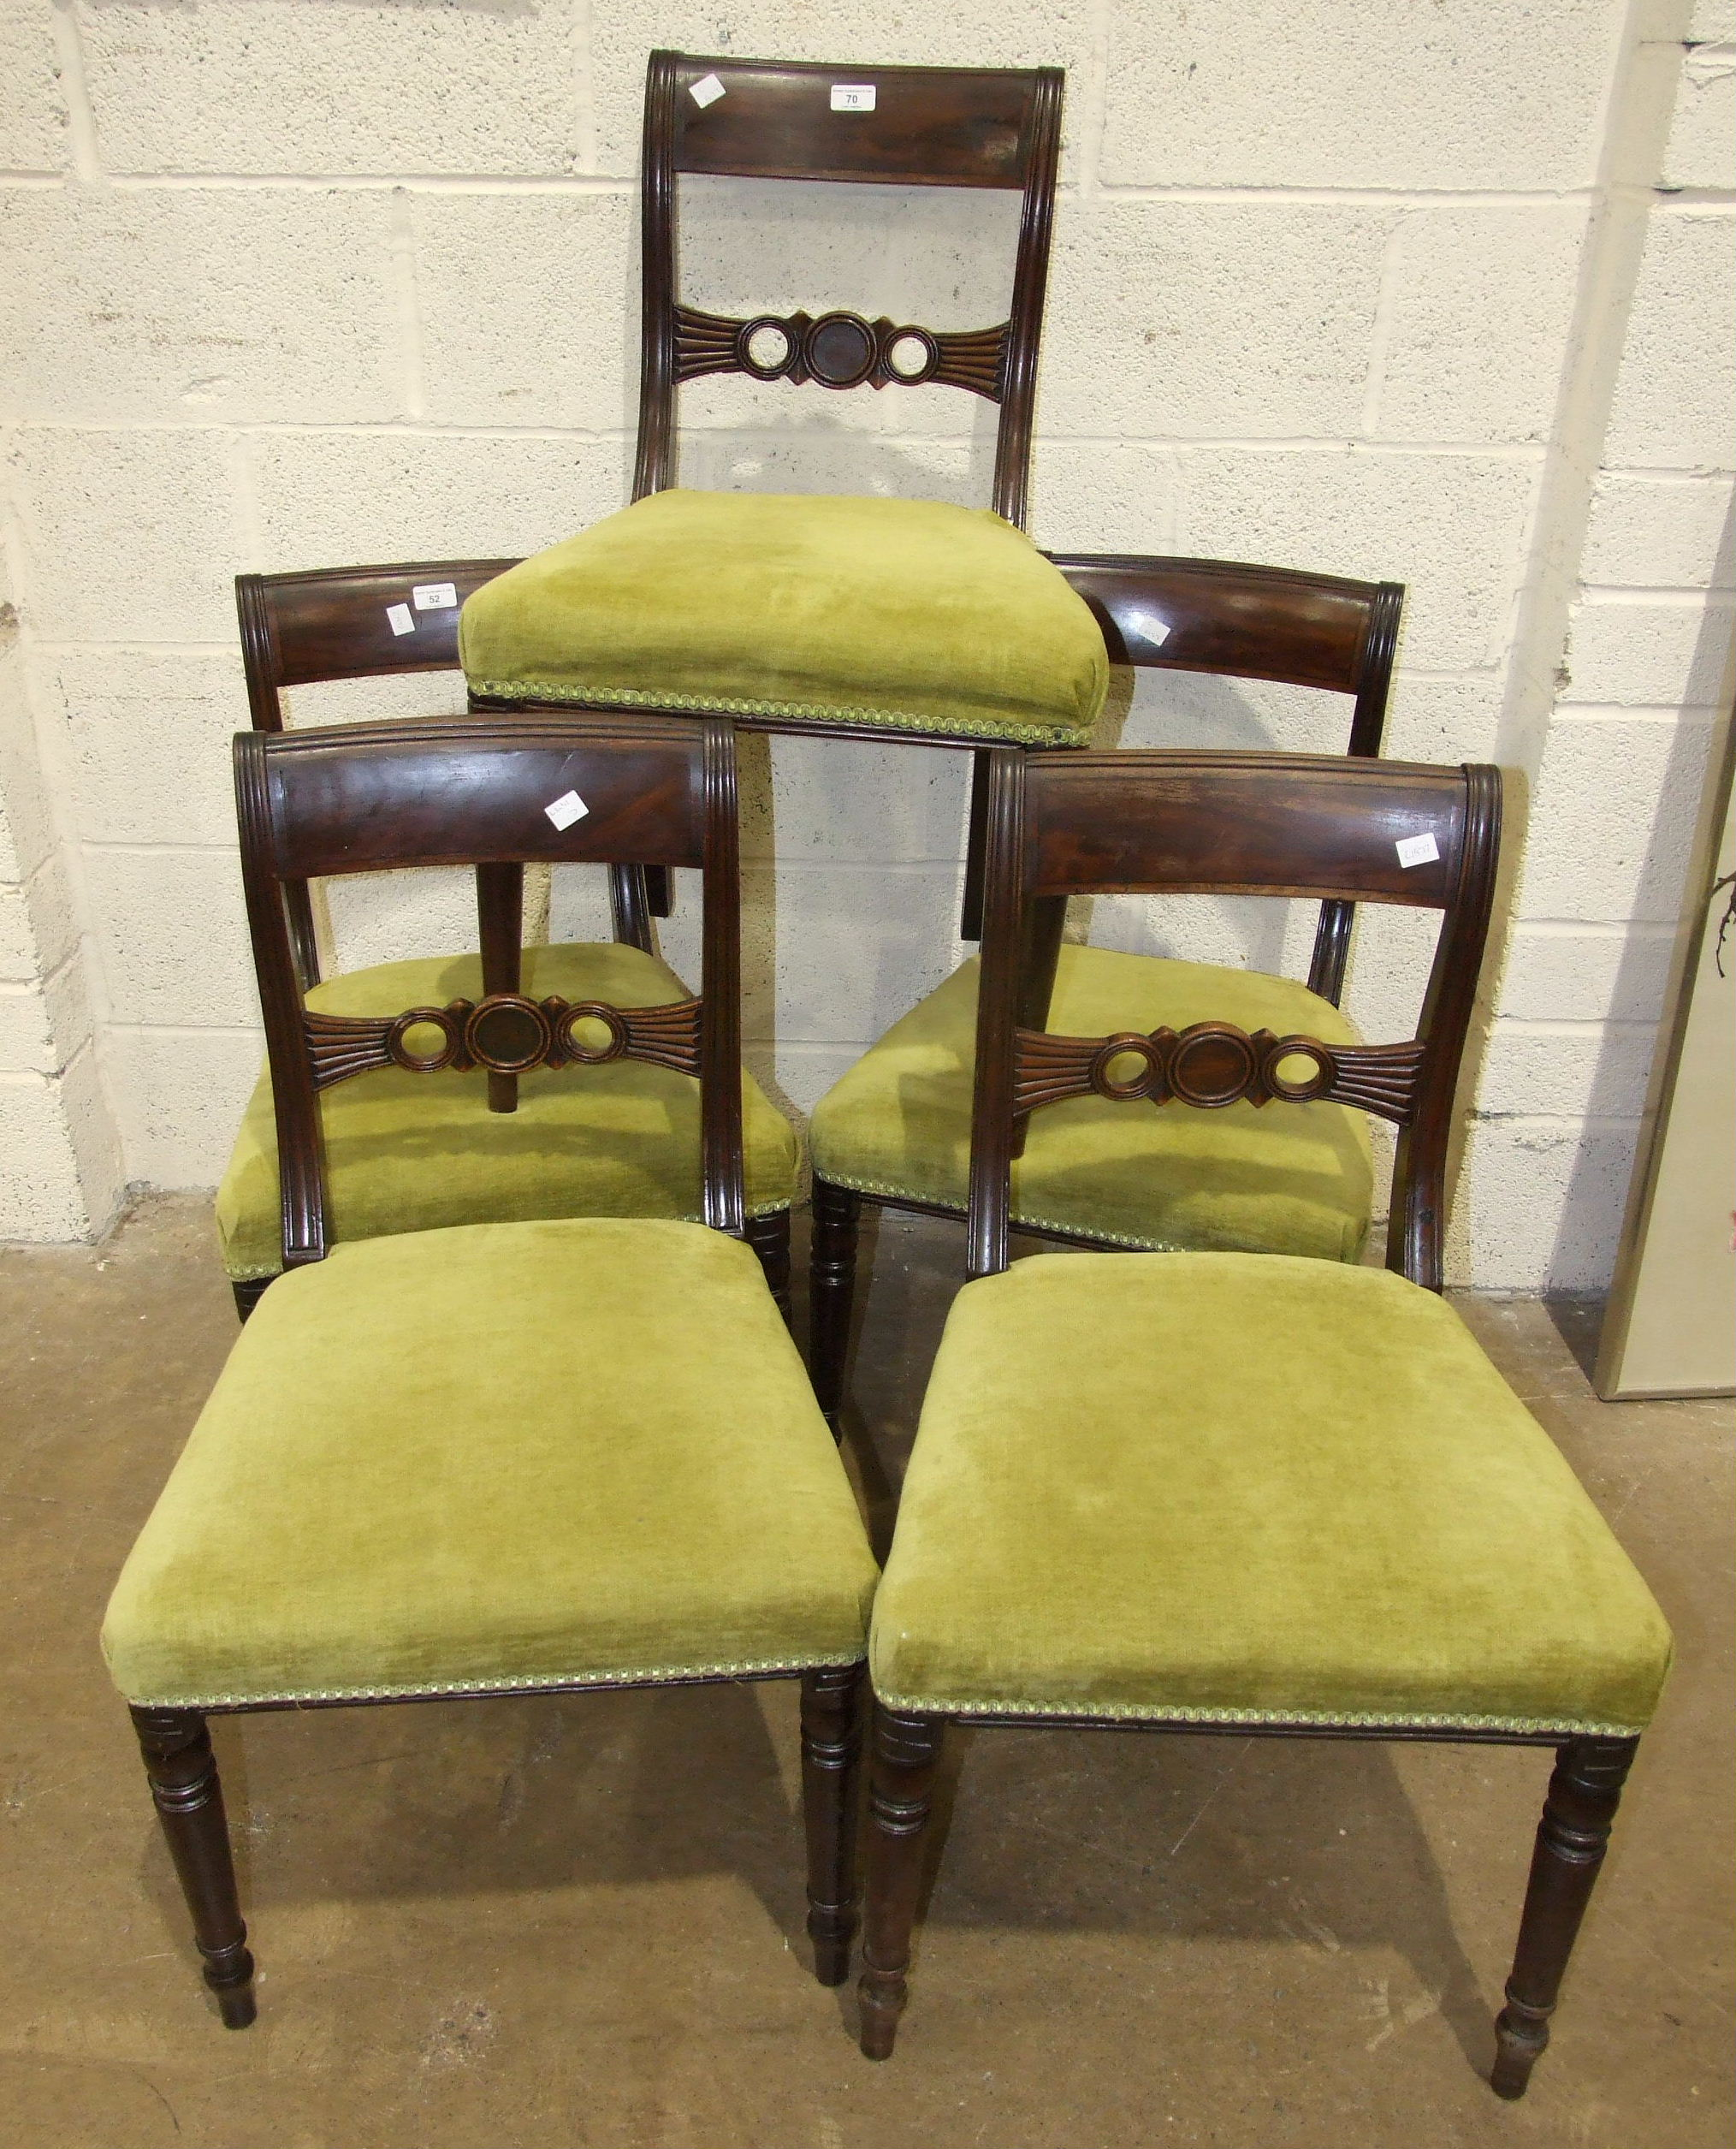 A set of four early-Victorian mahogany dining chairs, with curved top rails and open backs, also - Image 3 of 3